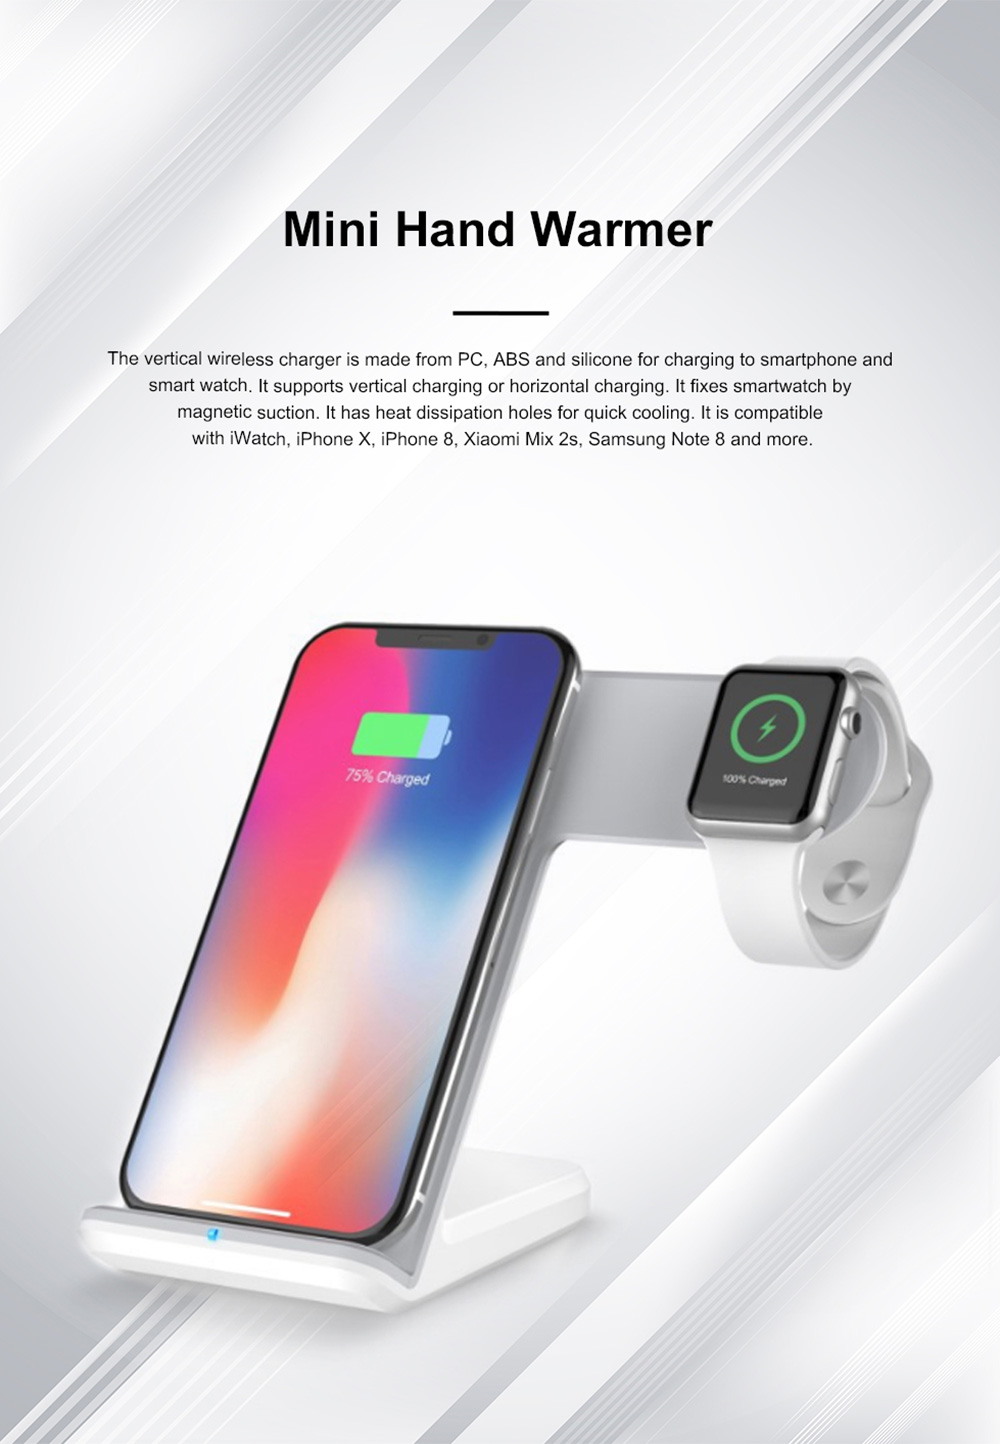 Vertical Wireless Charger Upright Quick-acting Two in One Recharger Compatible for iPhone X iWatch Samsung Wireless Charge Dock 0